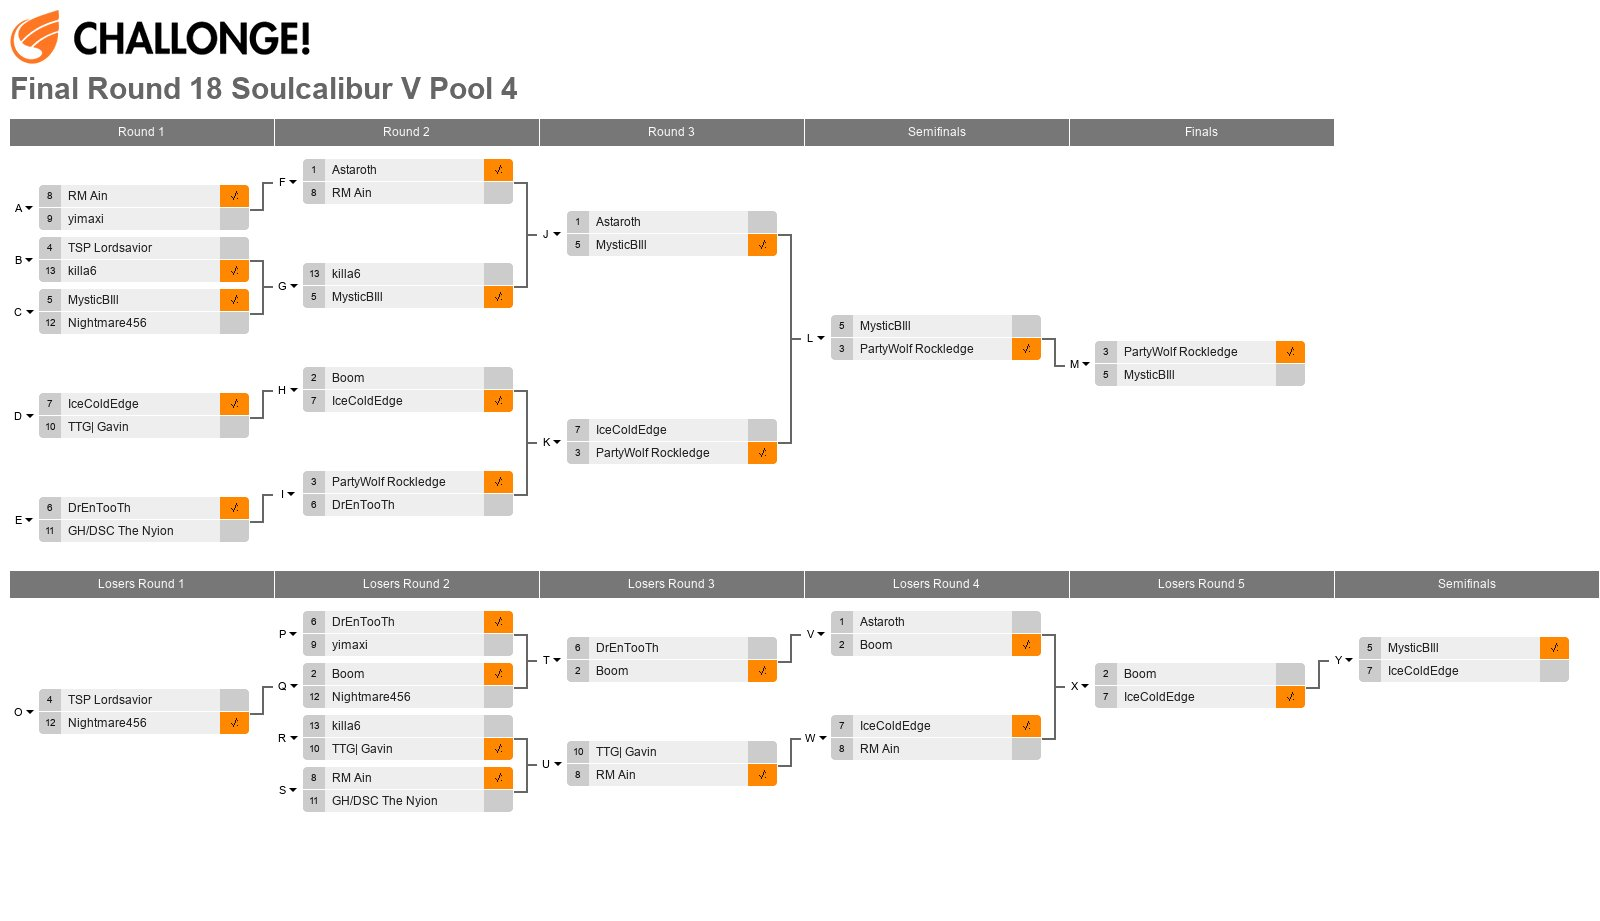 Final Round 18 Soulcalibur V Pool 4